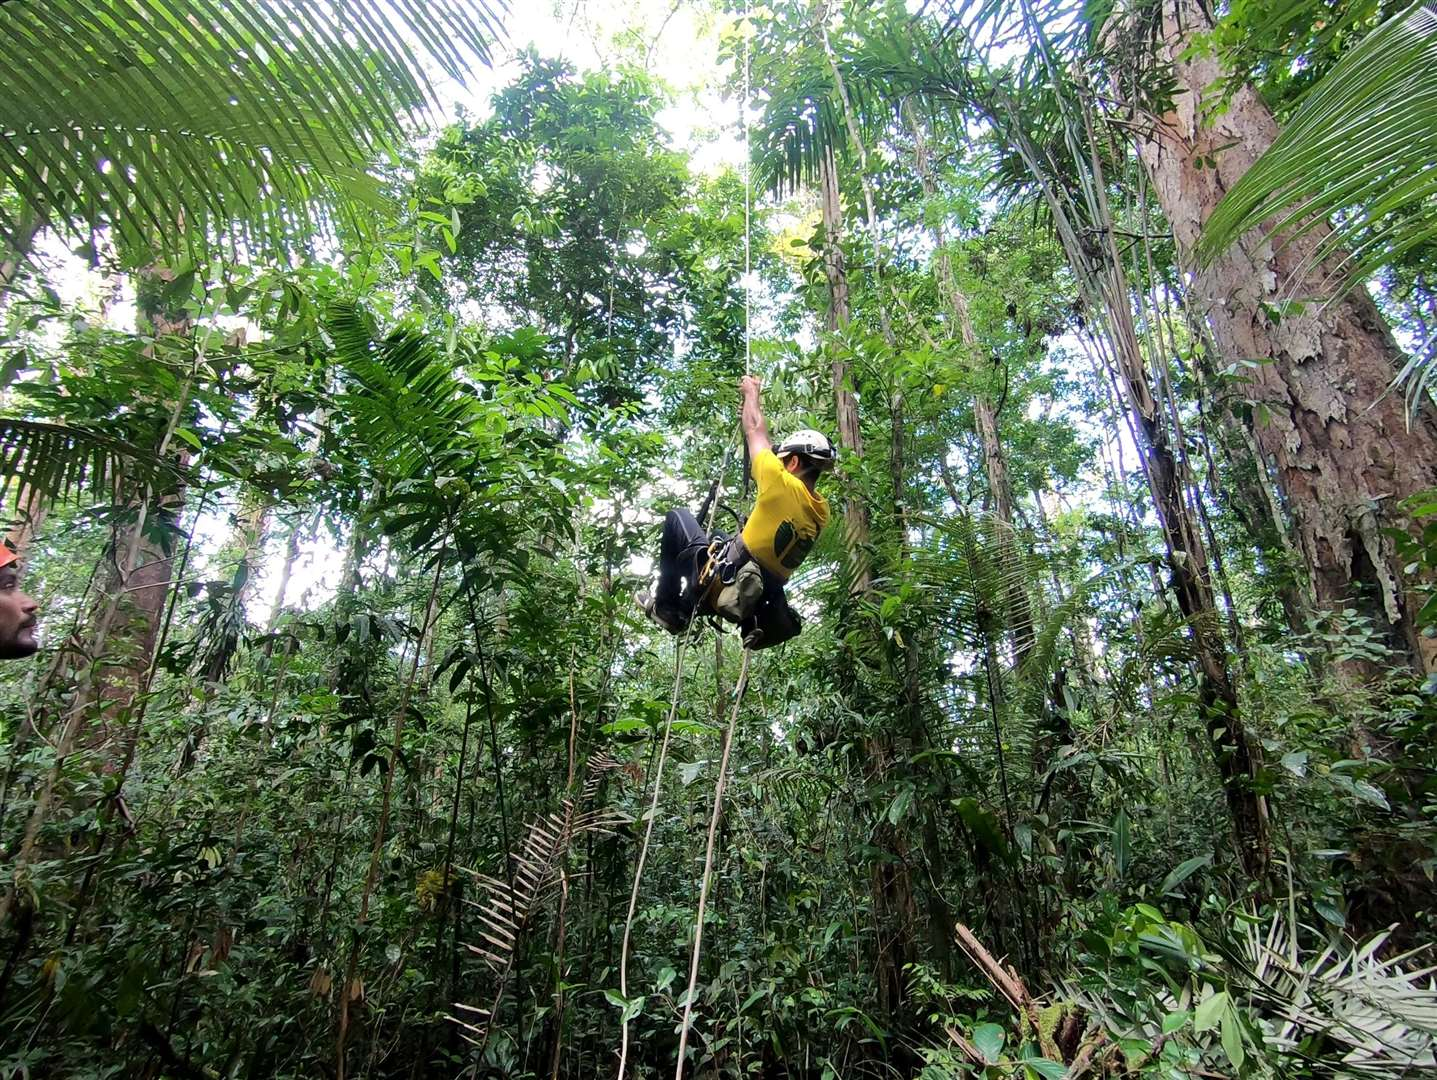 Fabiano climbing one of the tall trees in the Amazon. Picture: Toby Jackson